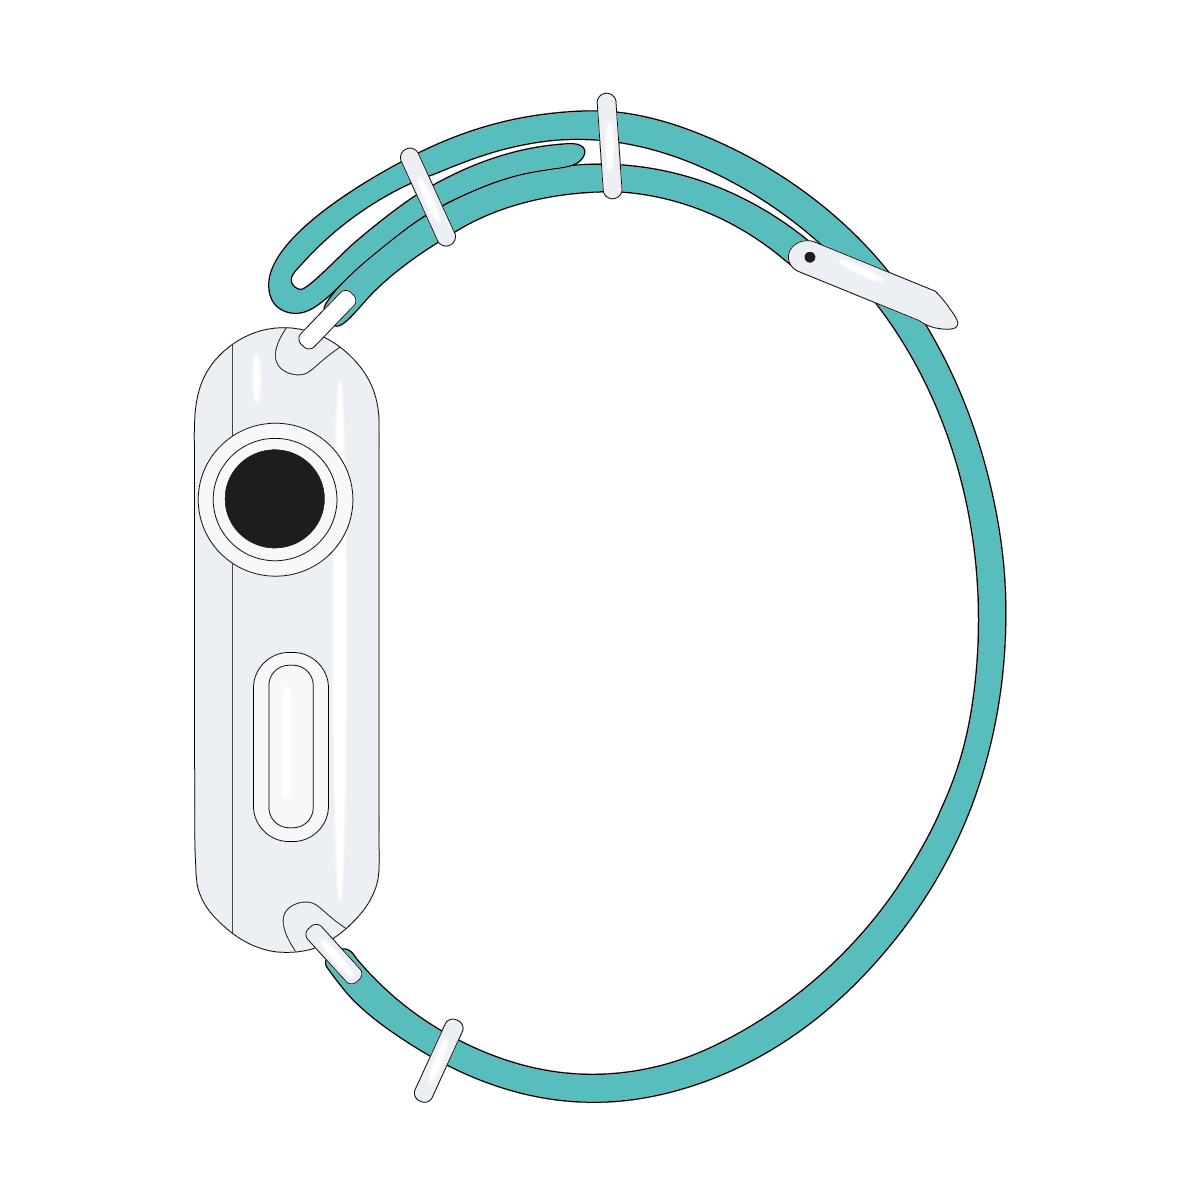 Cinturino Nato Apple Watch in nylon turchese | Roobaya – Bild 4